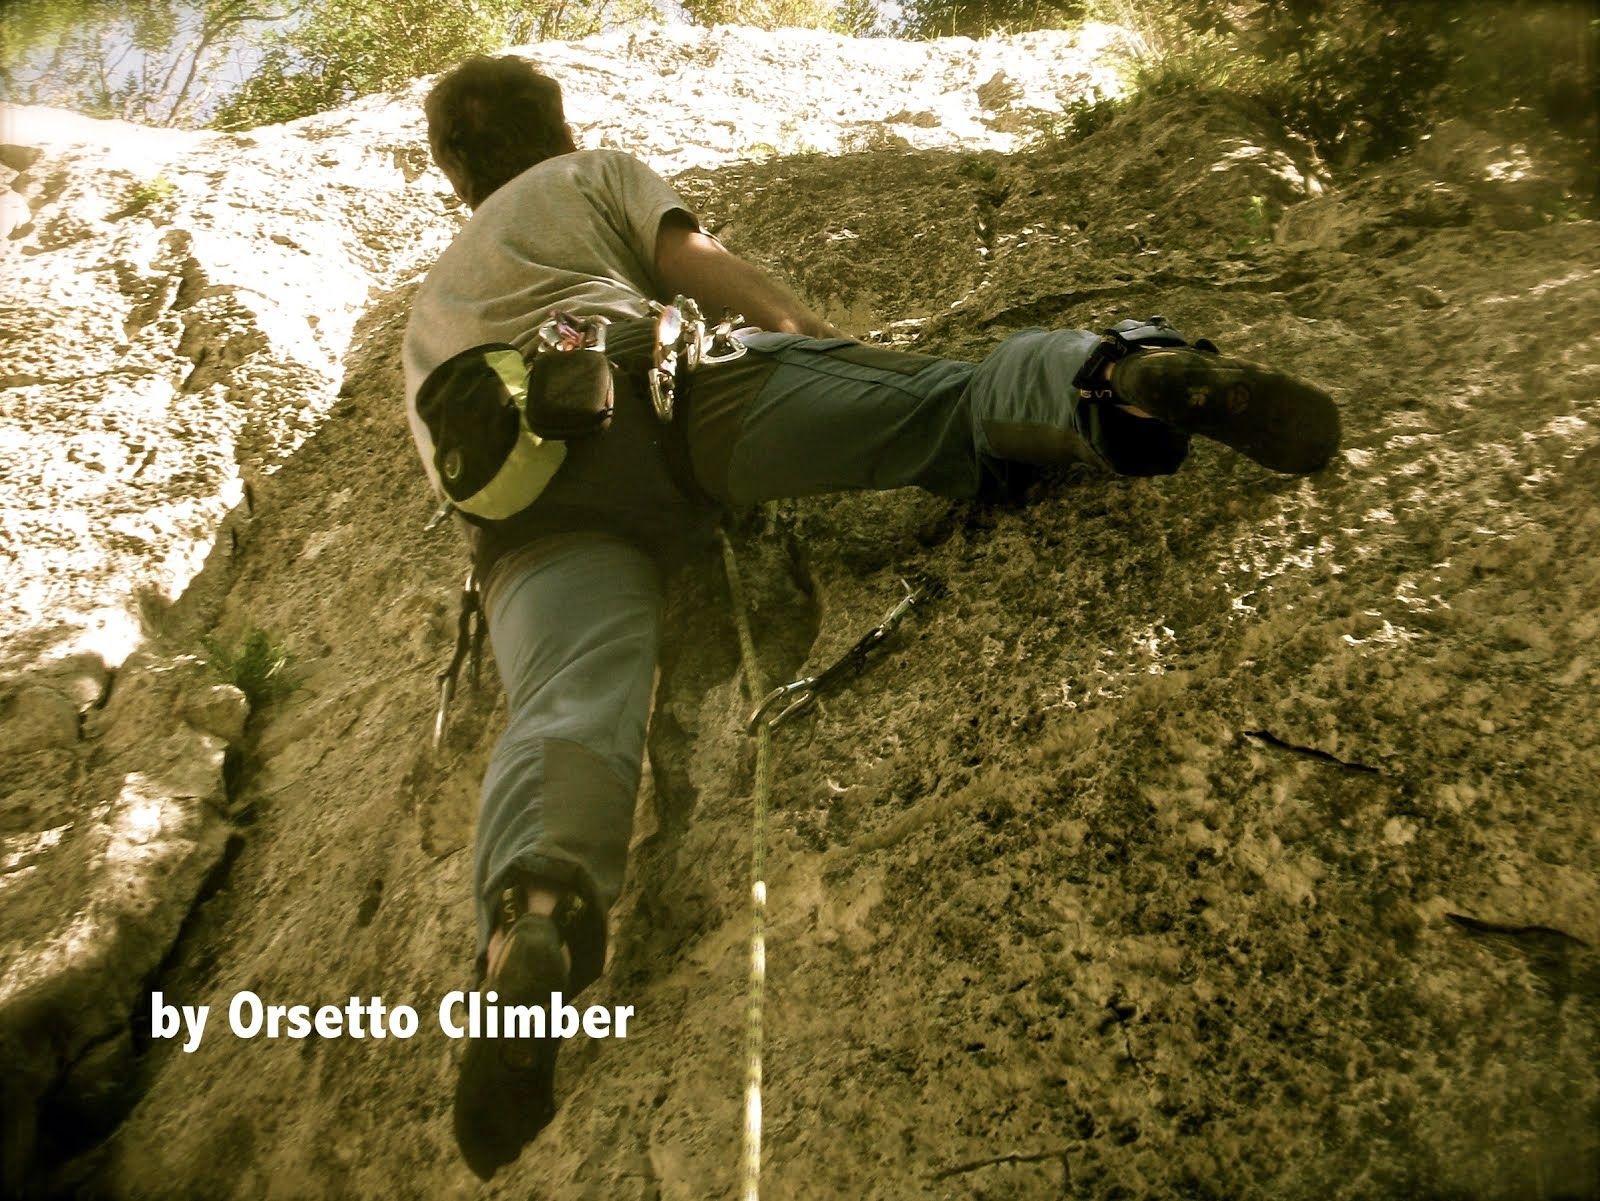 IN VETTA SENZA FRETTA...by Orsetto Climber